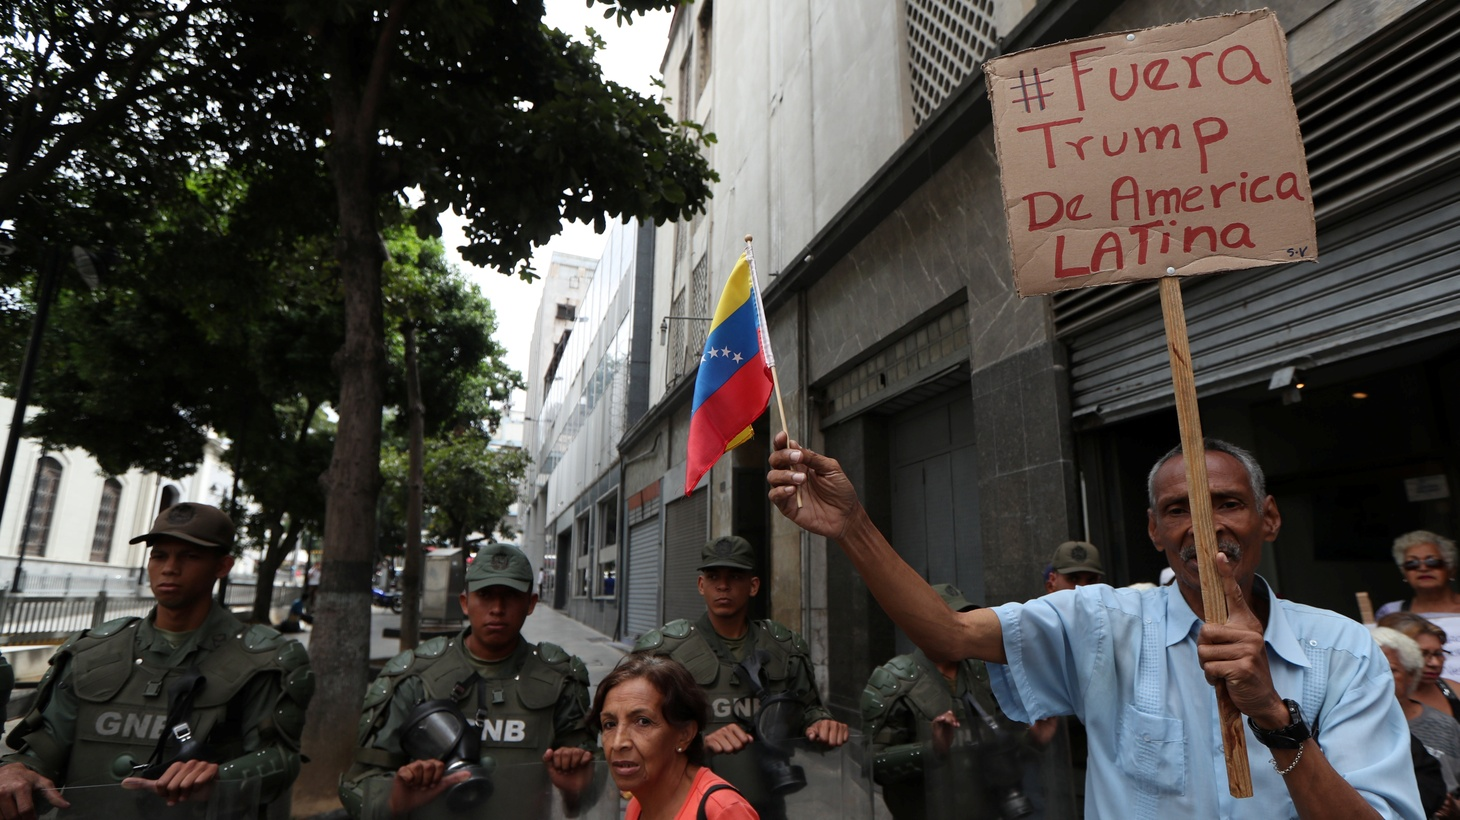 A supporter of Venezuela's President Nicolas Maduro holds a sign reading 'Trump out from Latin America' while security force members stand guard near the National Assembly building in Caracas, Venezuela May 21, 2019.